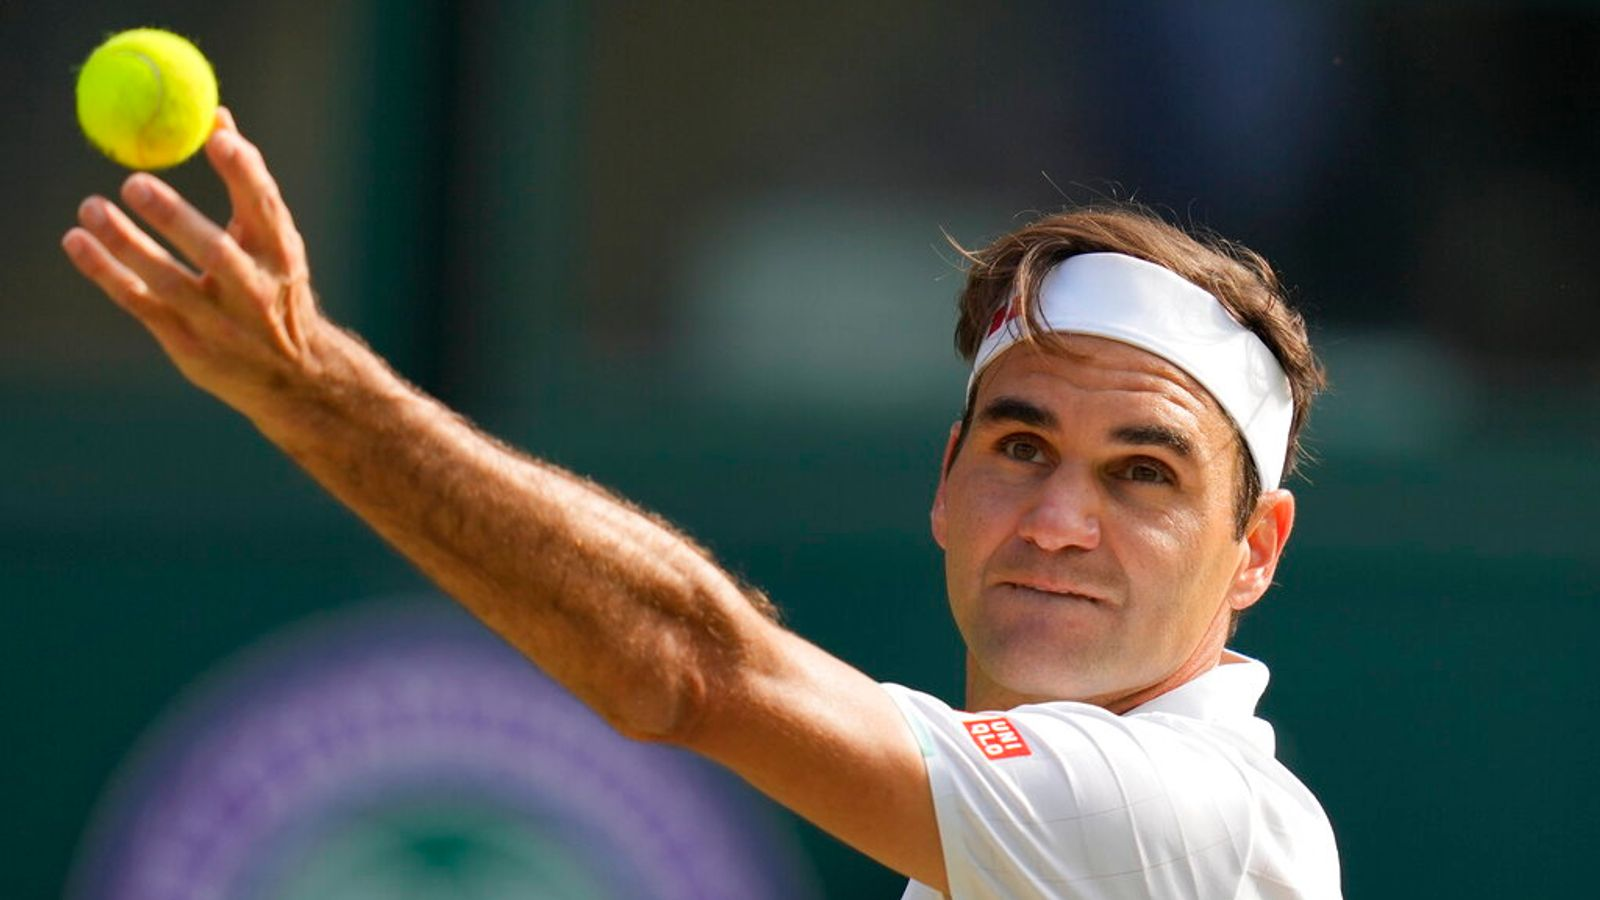 ROGER FEDERER | Top 10 richest player of the world2021